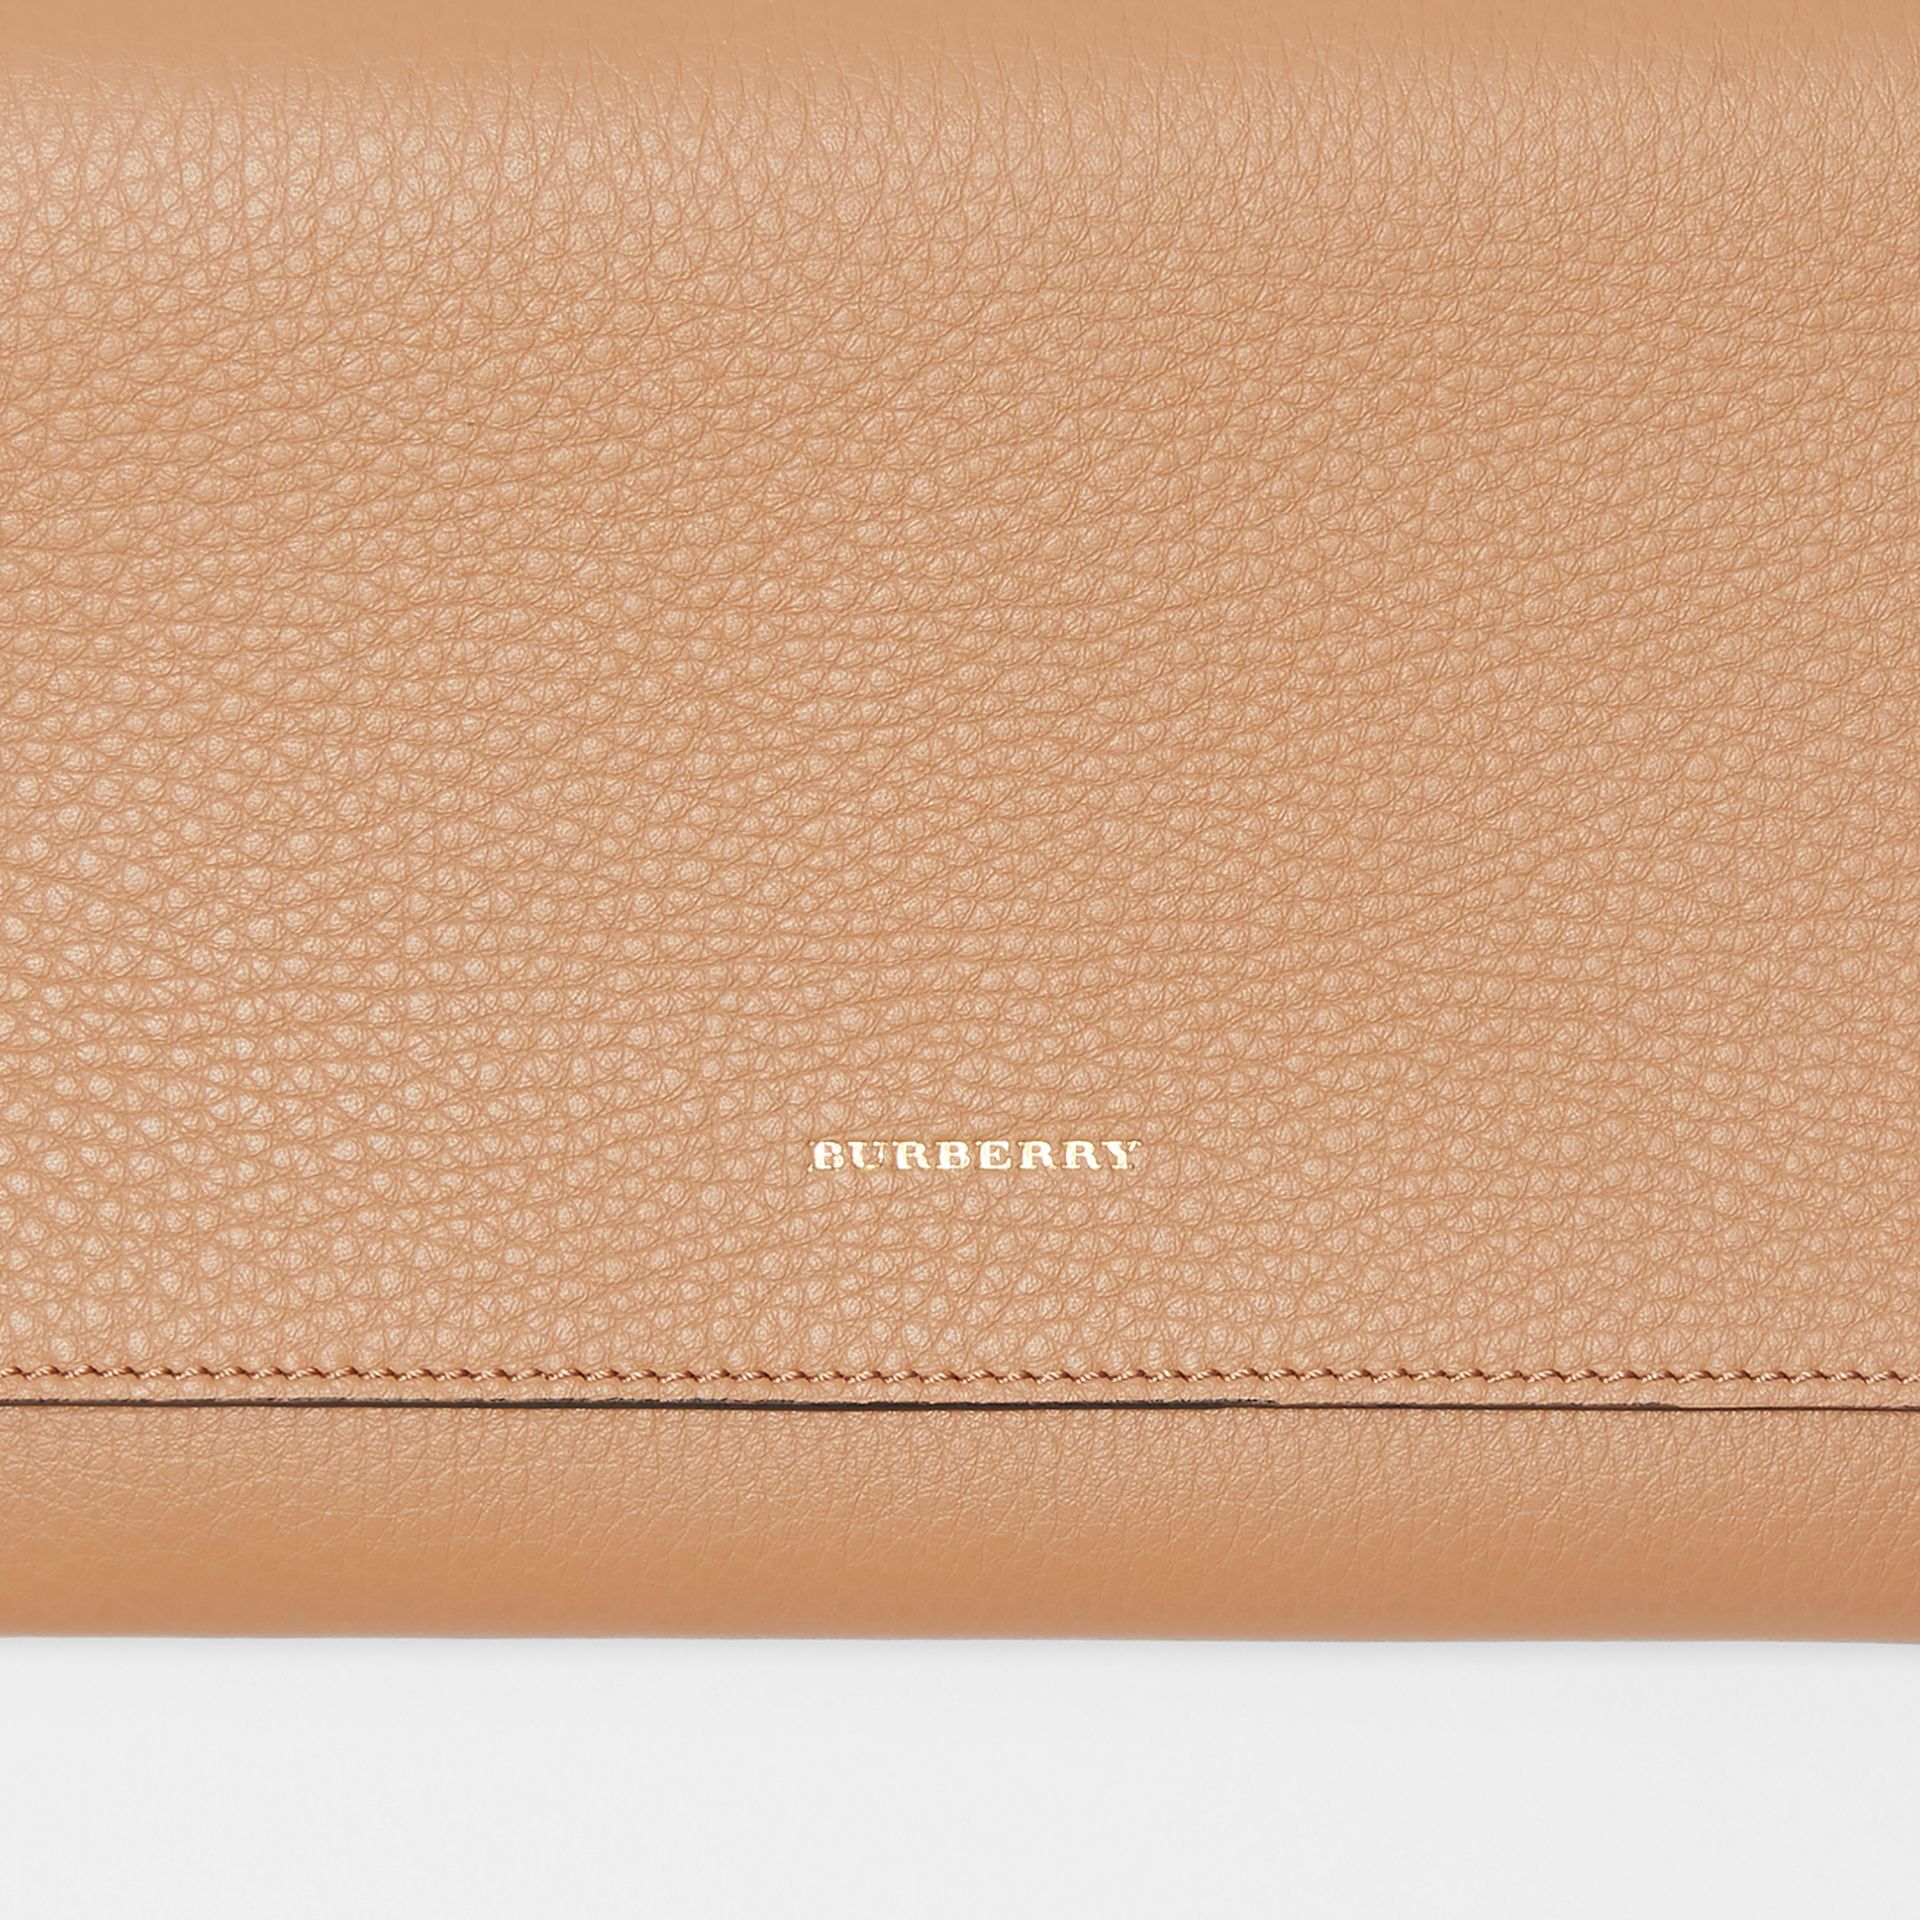 Two-tone Leather Wristlet Clutch in Light Camel - Women | Burberry Hong Kong - gallery image 1